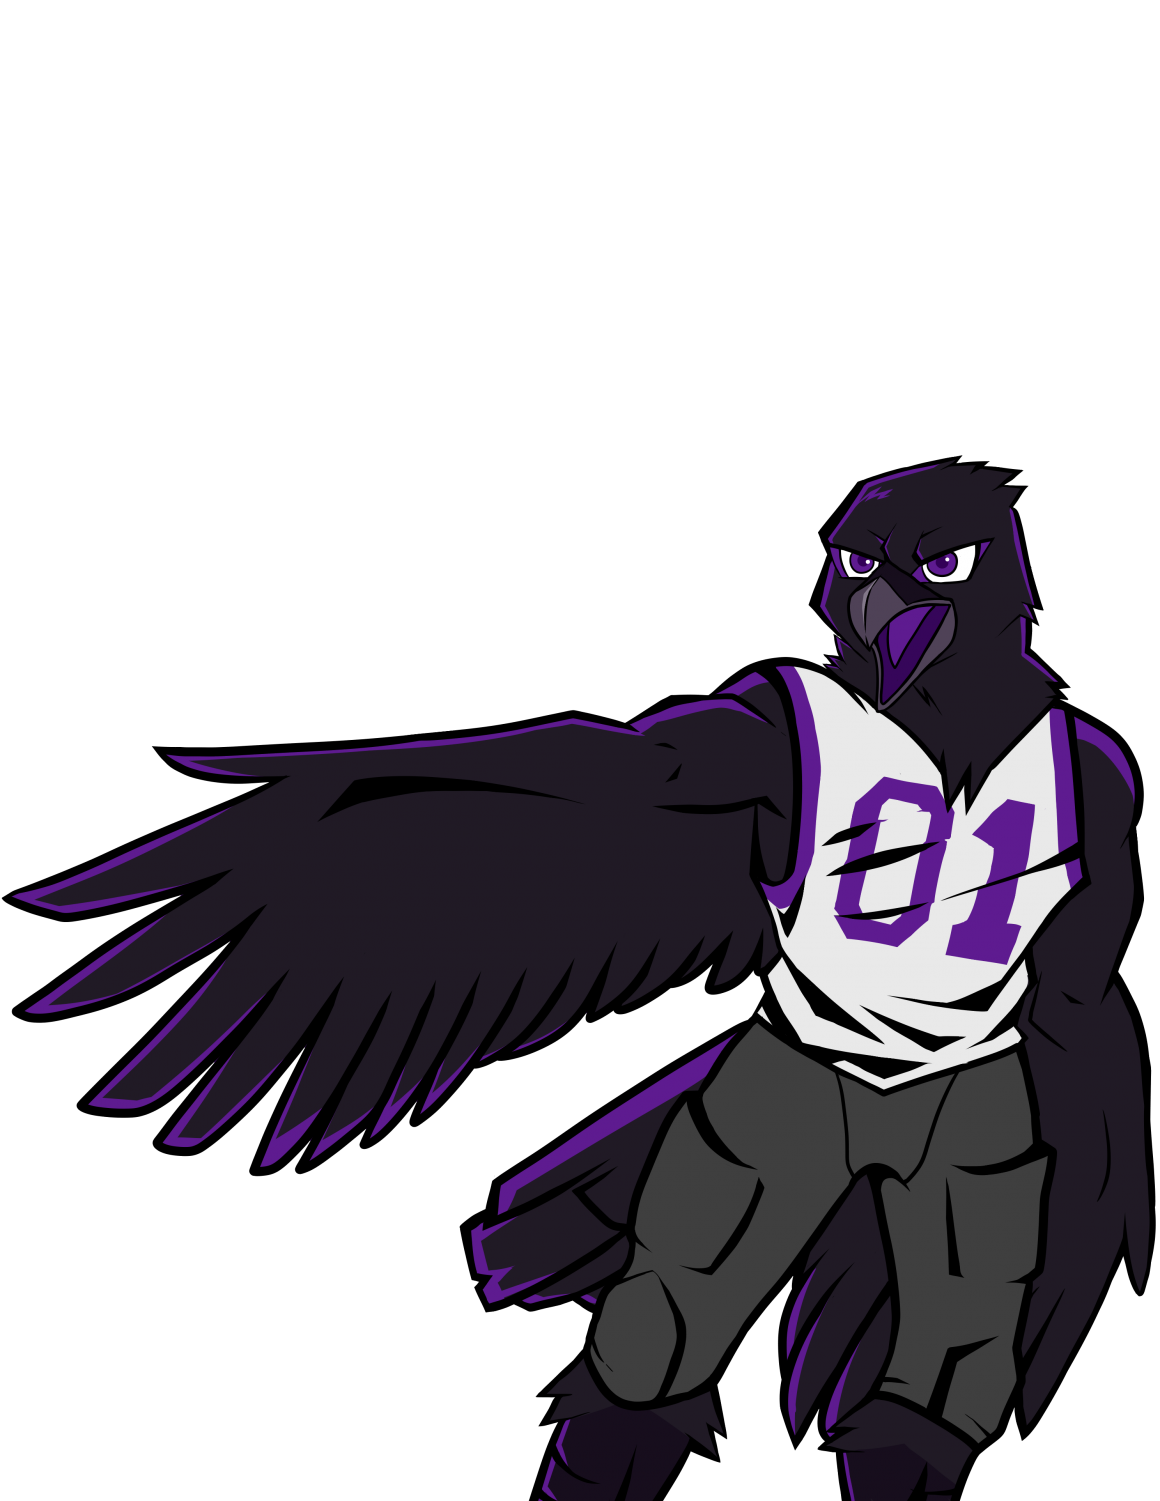 Since the 2001 decision to change the mascot to Raven, Native American imagery has been absent from campus. The work of the Ready 4 Ravens club has made the full change to Raven a real possibility for the school.